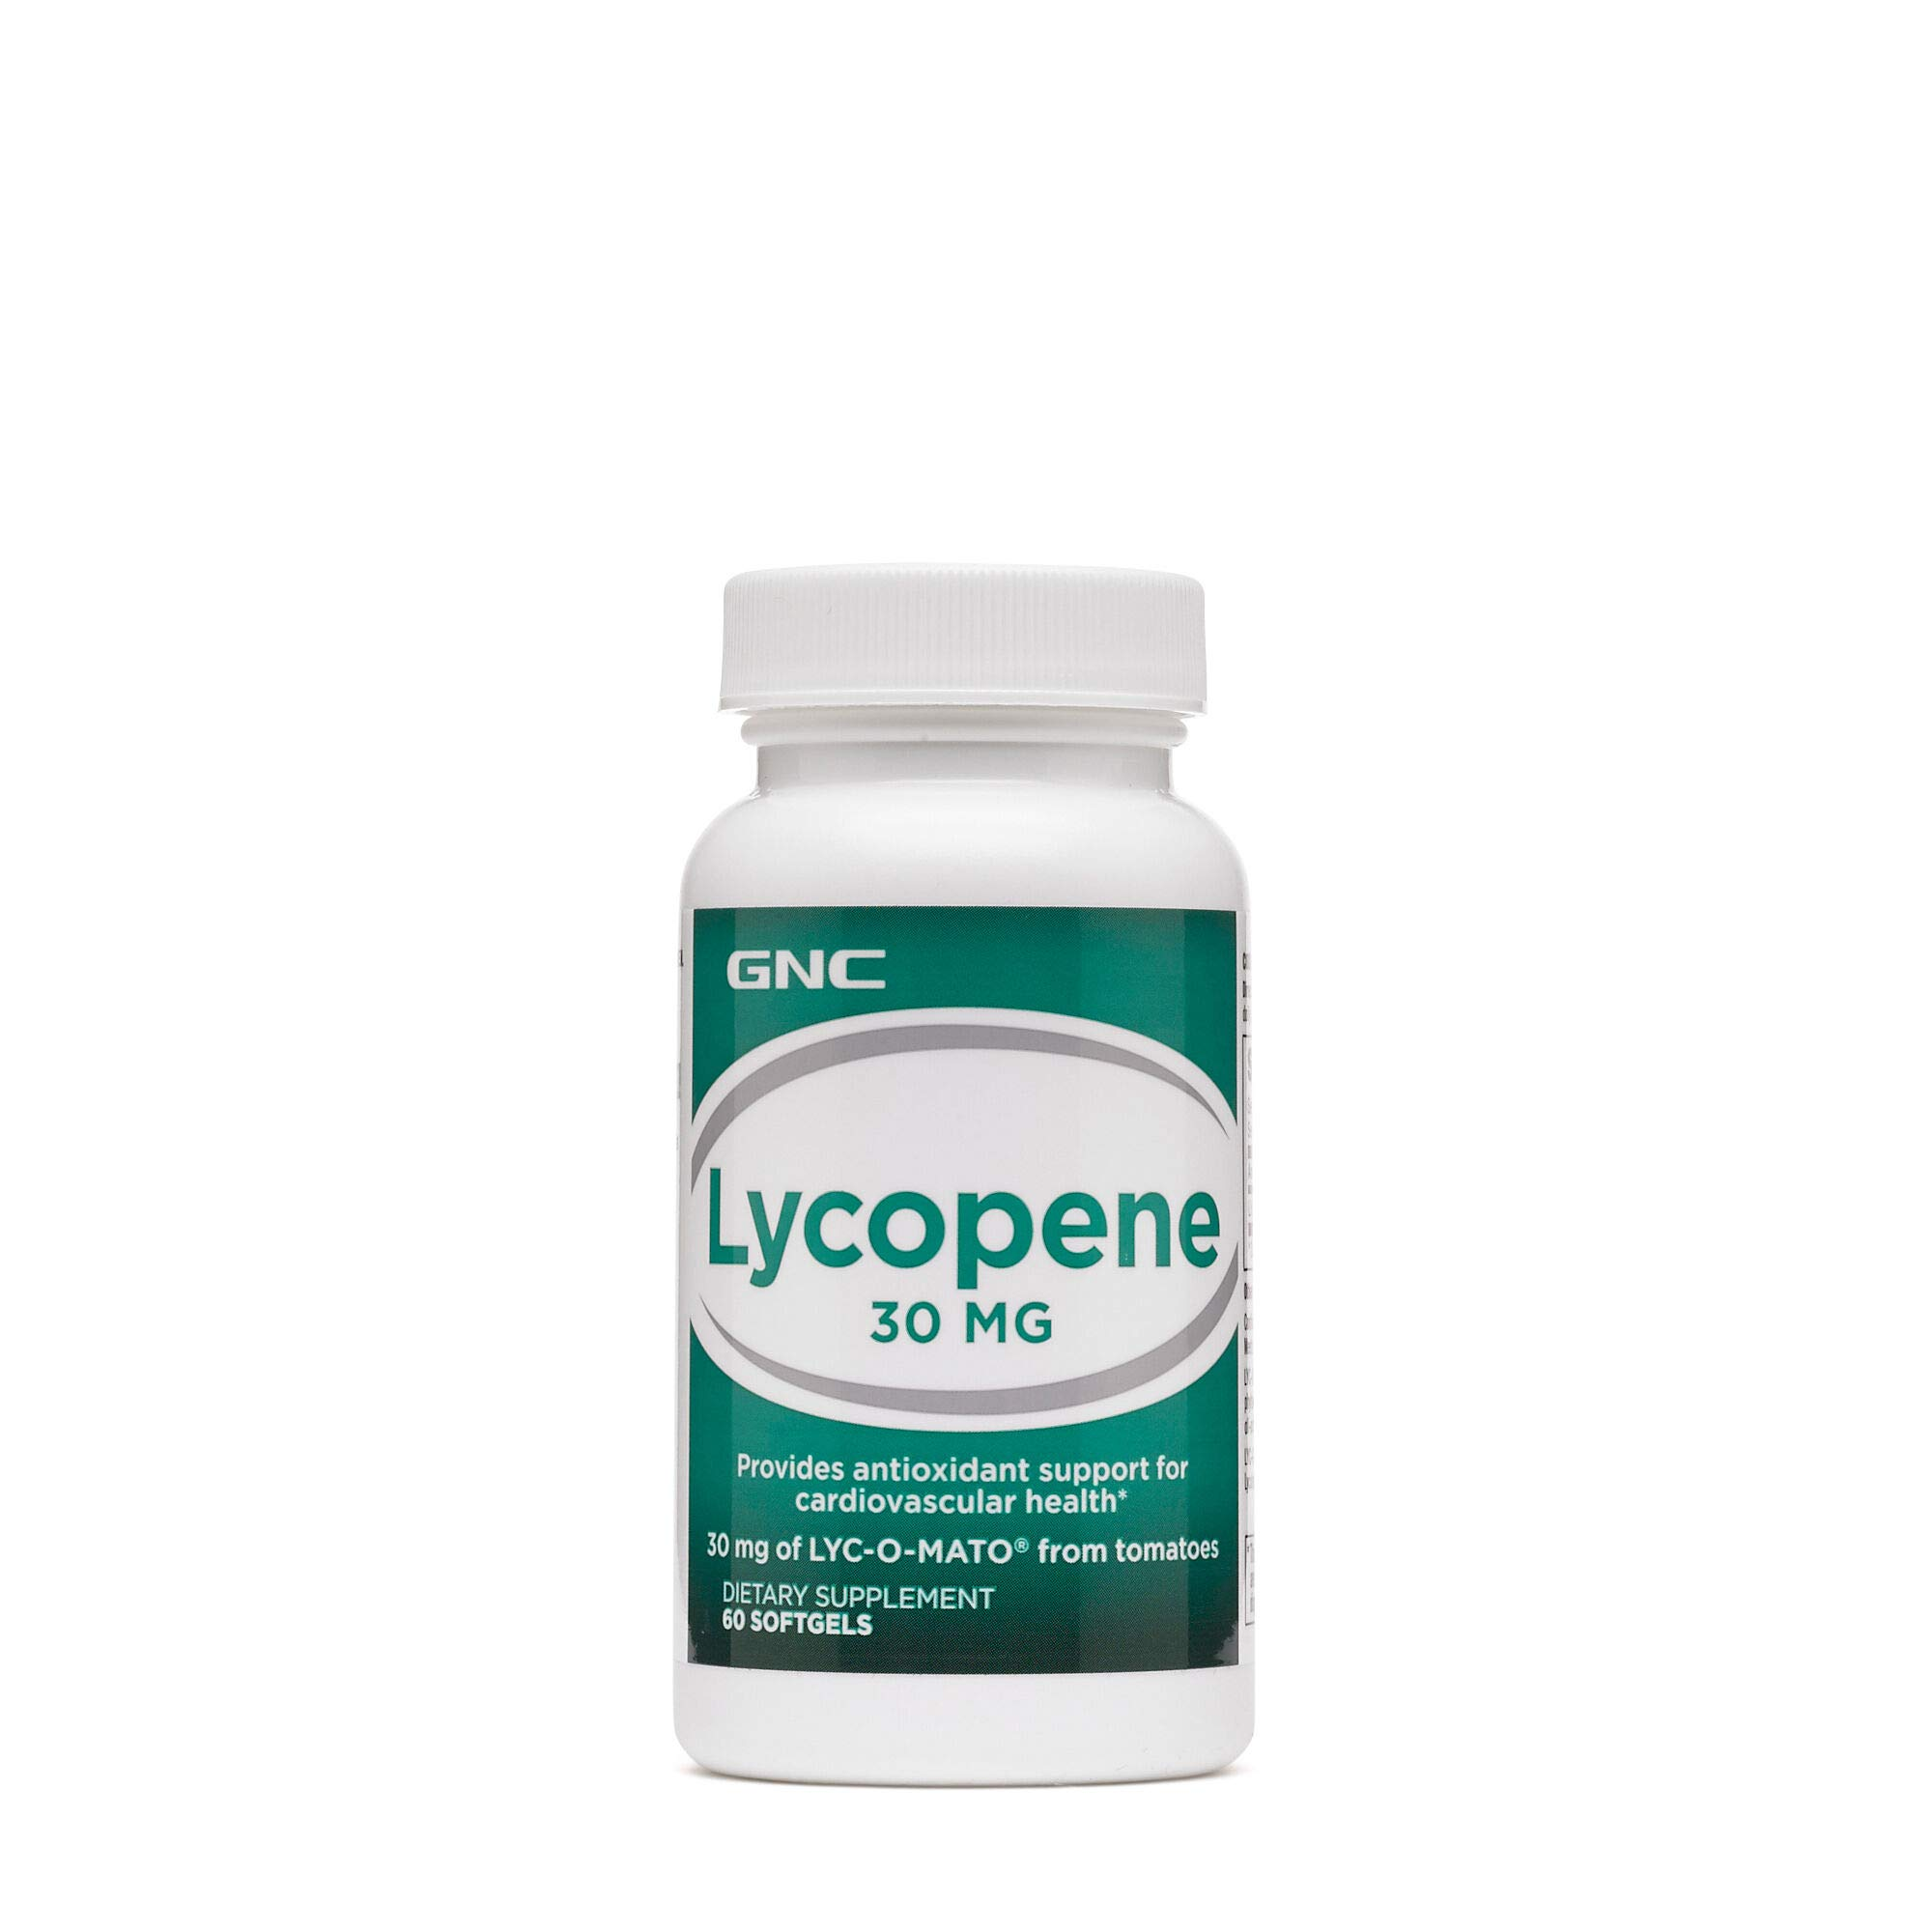 GNC Lycopene 30mg, 60 Softgels, Supports Cardiovascular Health by GNC